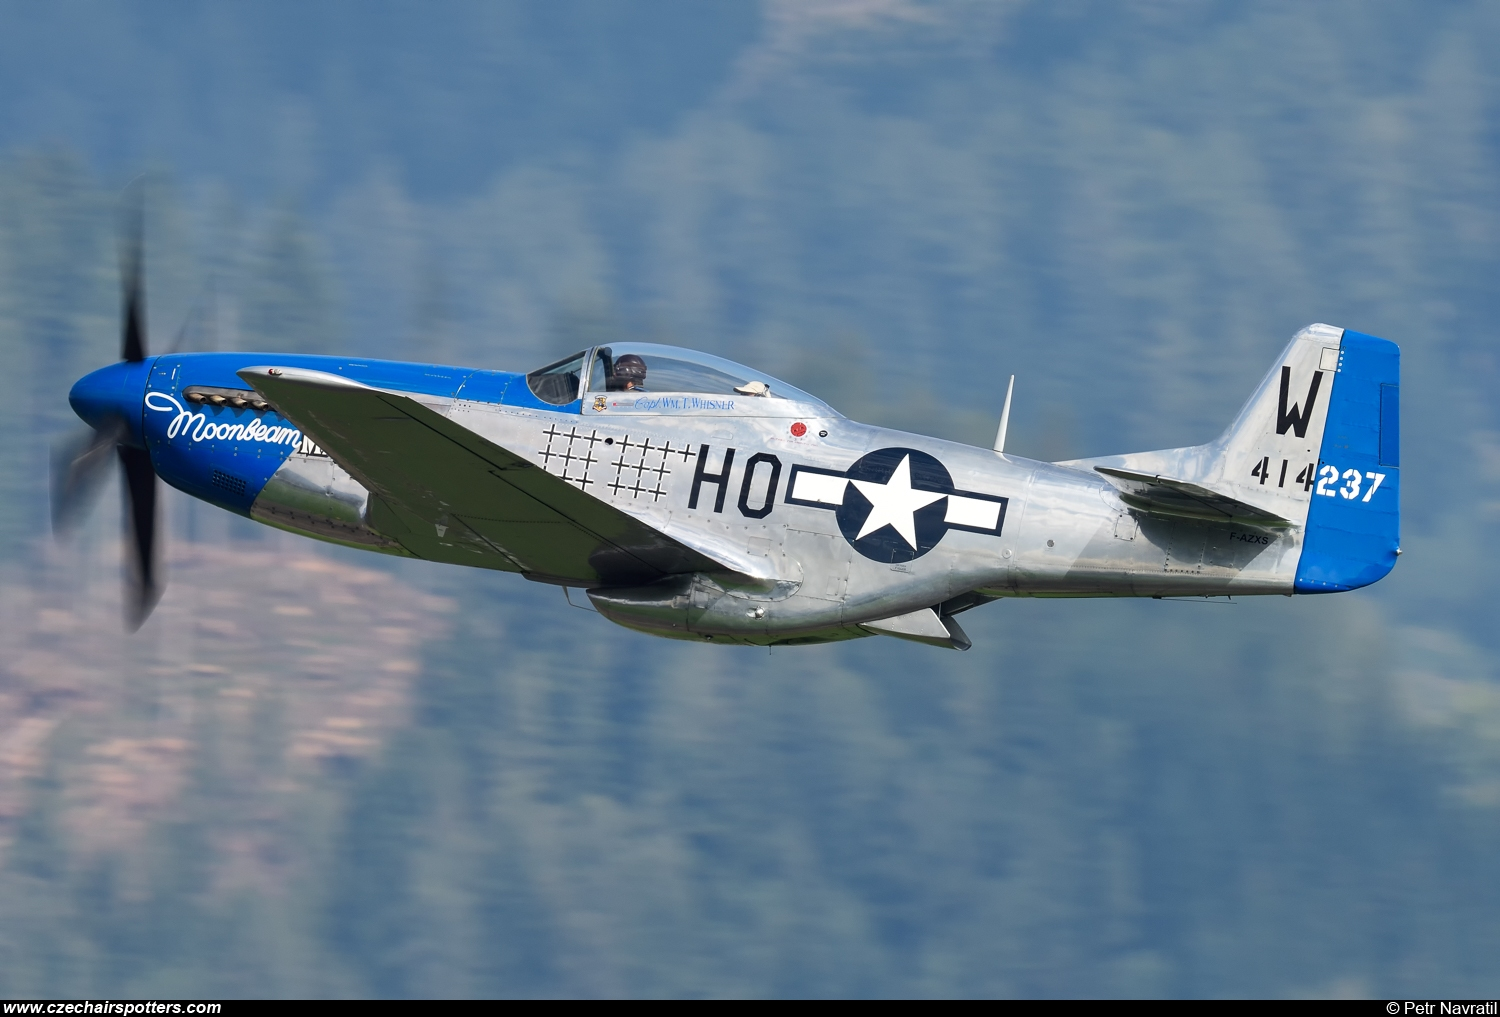 private – North American P-51D Mustang F-AZXS/HO-W/44-14237